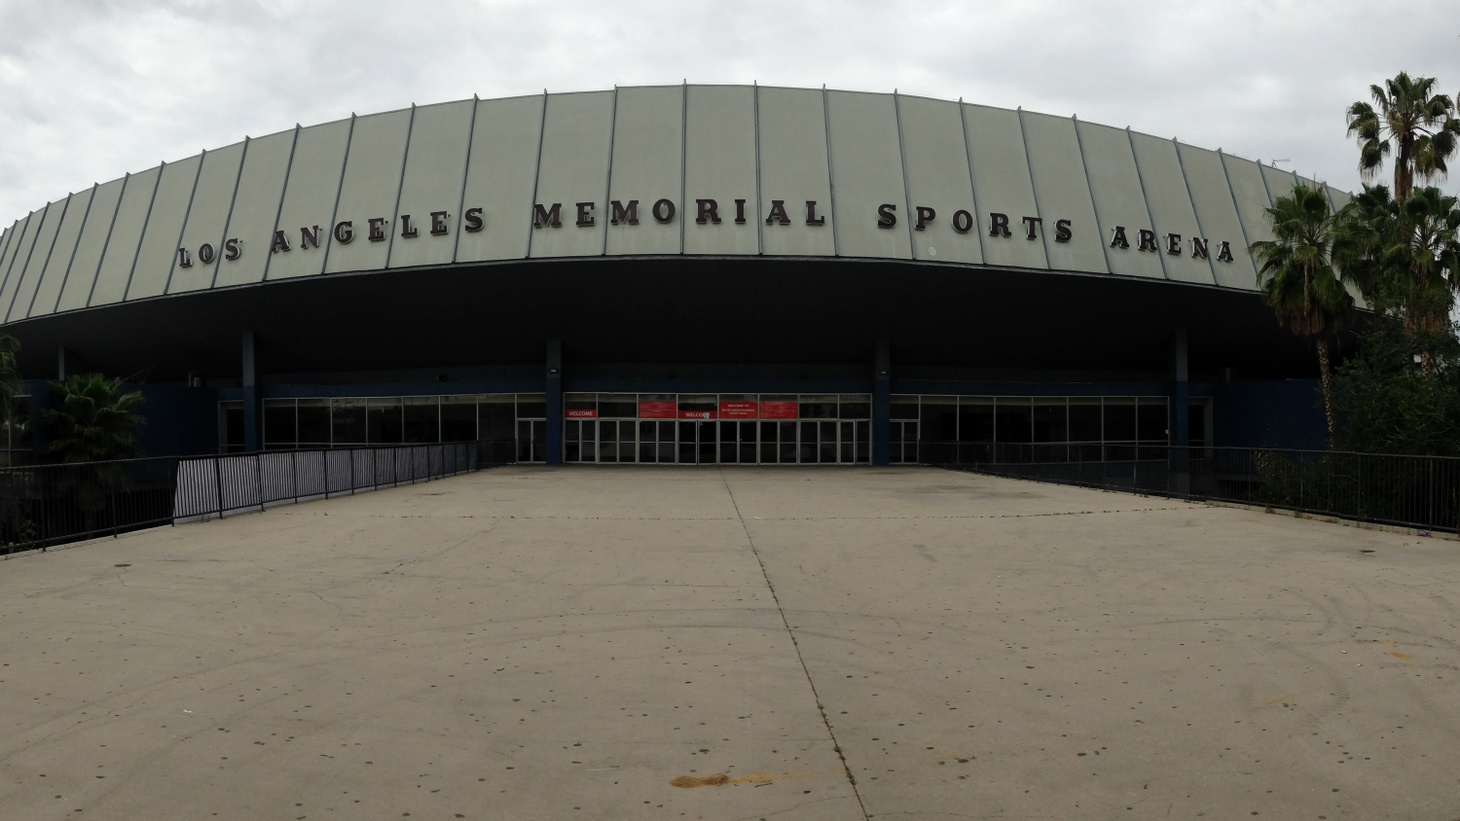 The LA Memorial Sports Arena in Exposition Park will soon be torn down to make room for a new 22,000-seat soccer stadium. We remember the arena's history and architecture as we say farewell.